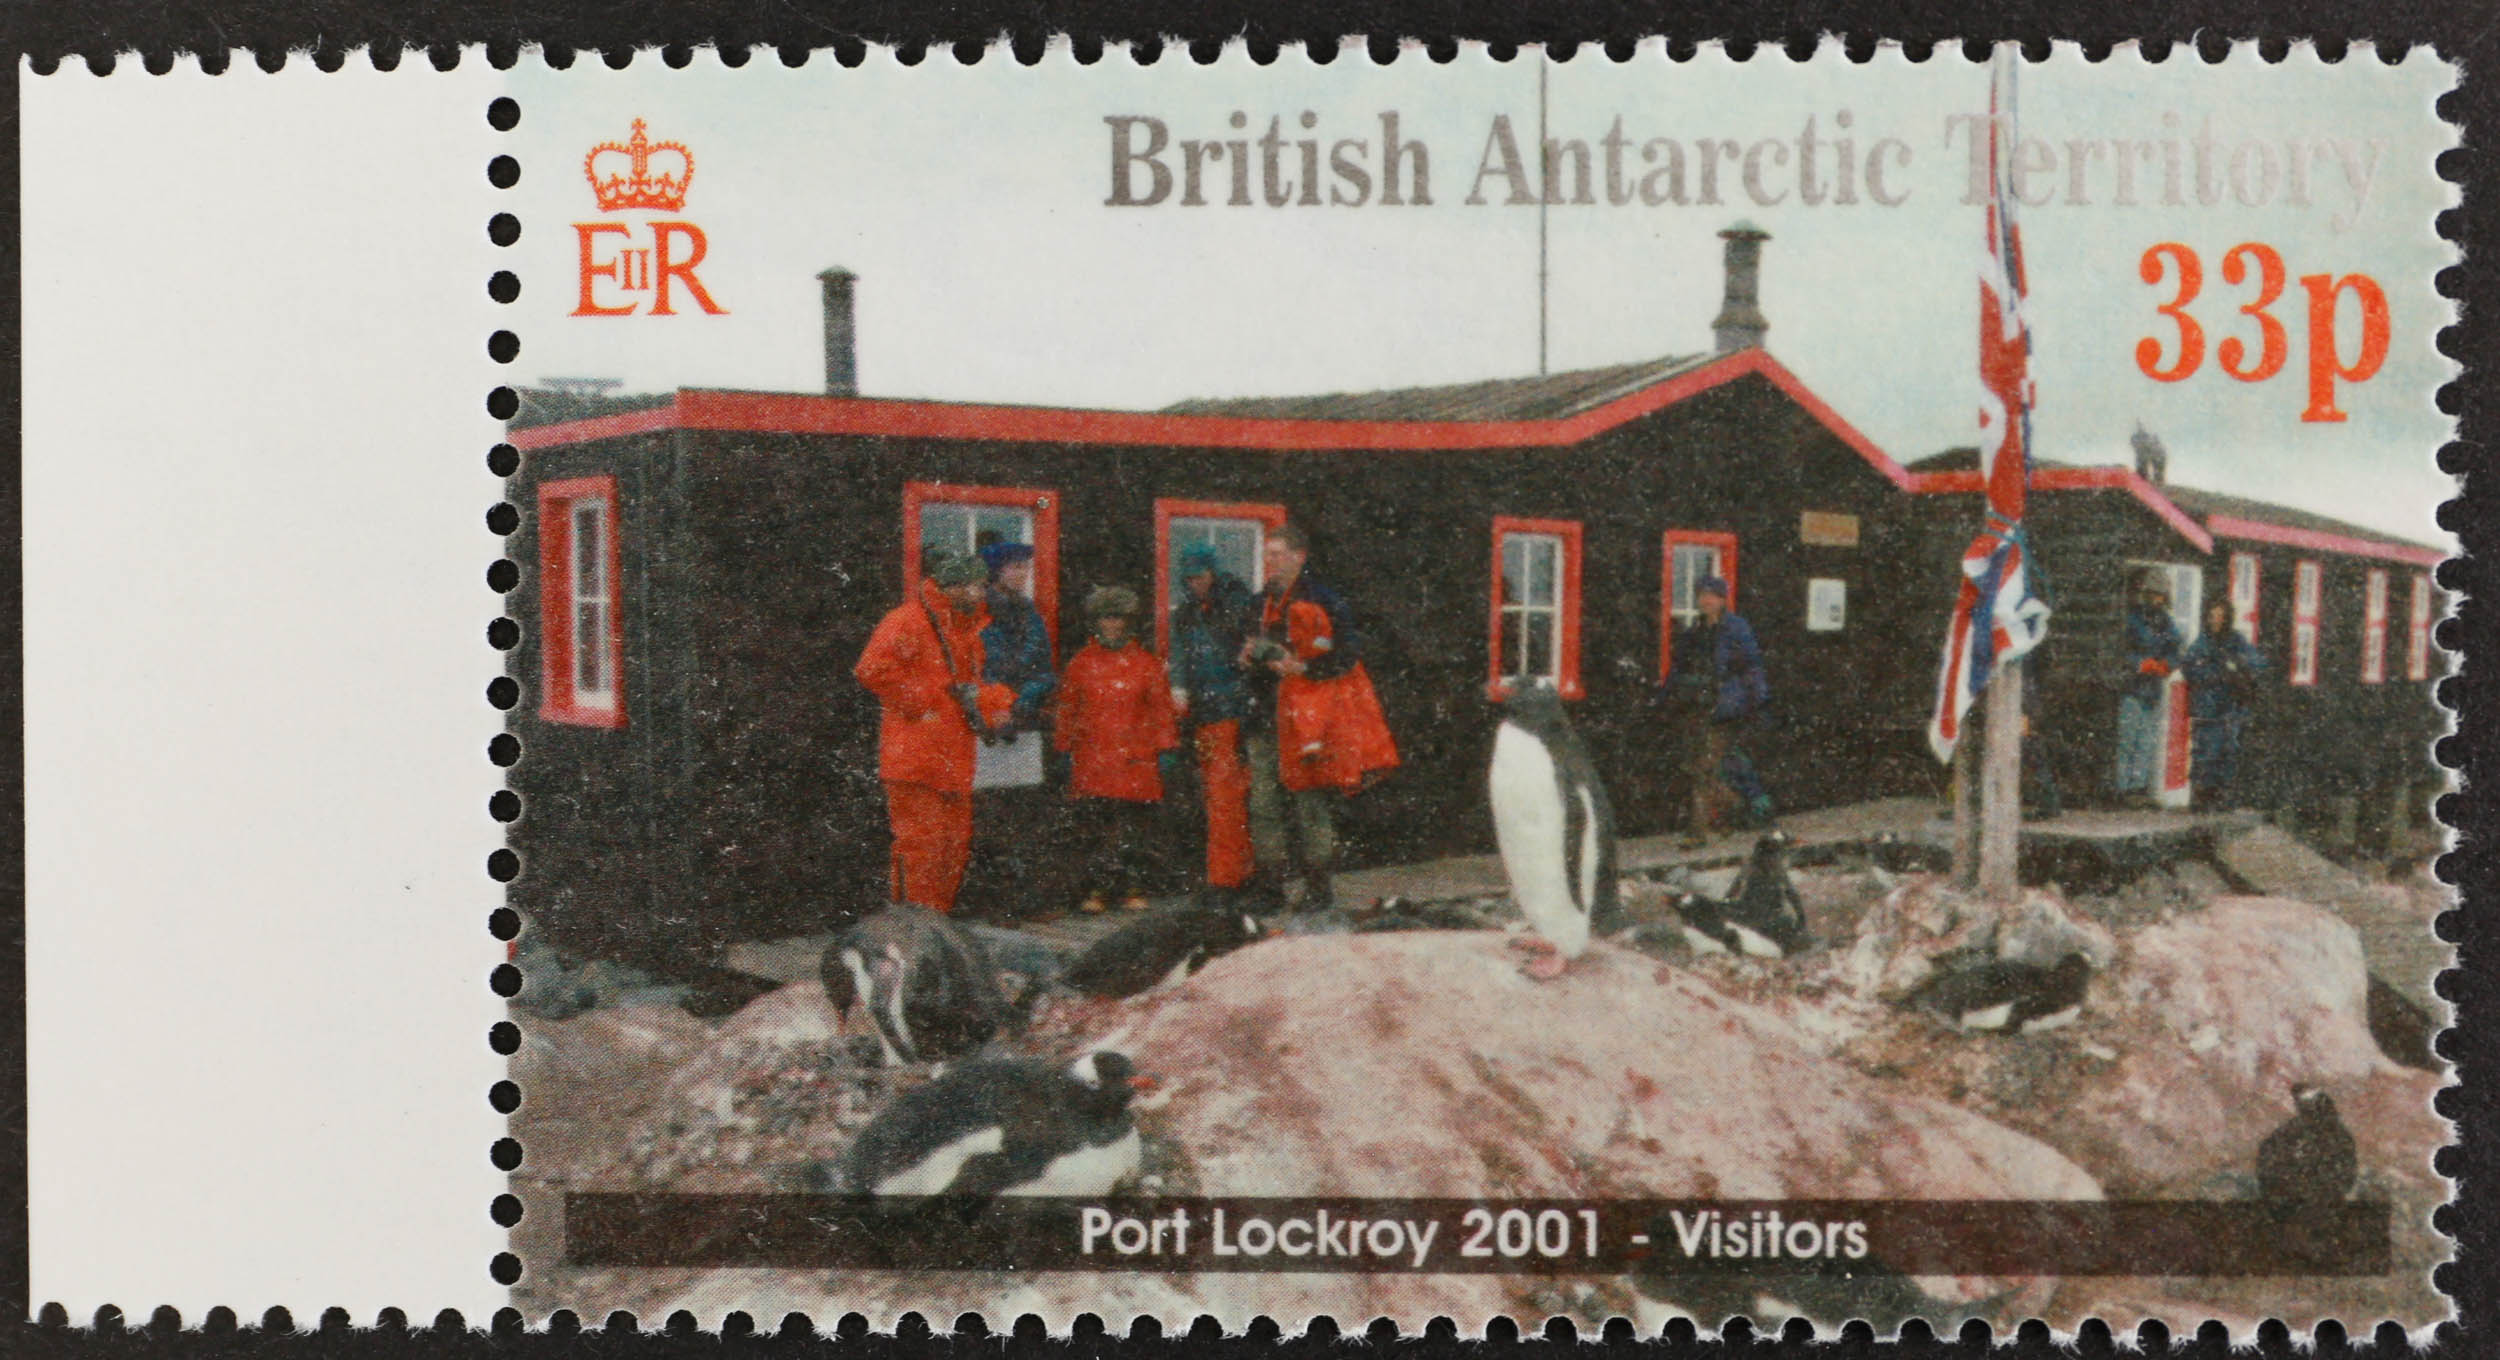 2001 Port Lockroy 33p value with watermark reversed and printed on the gum side. UM Cat. £375